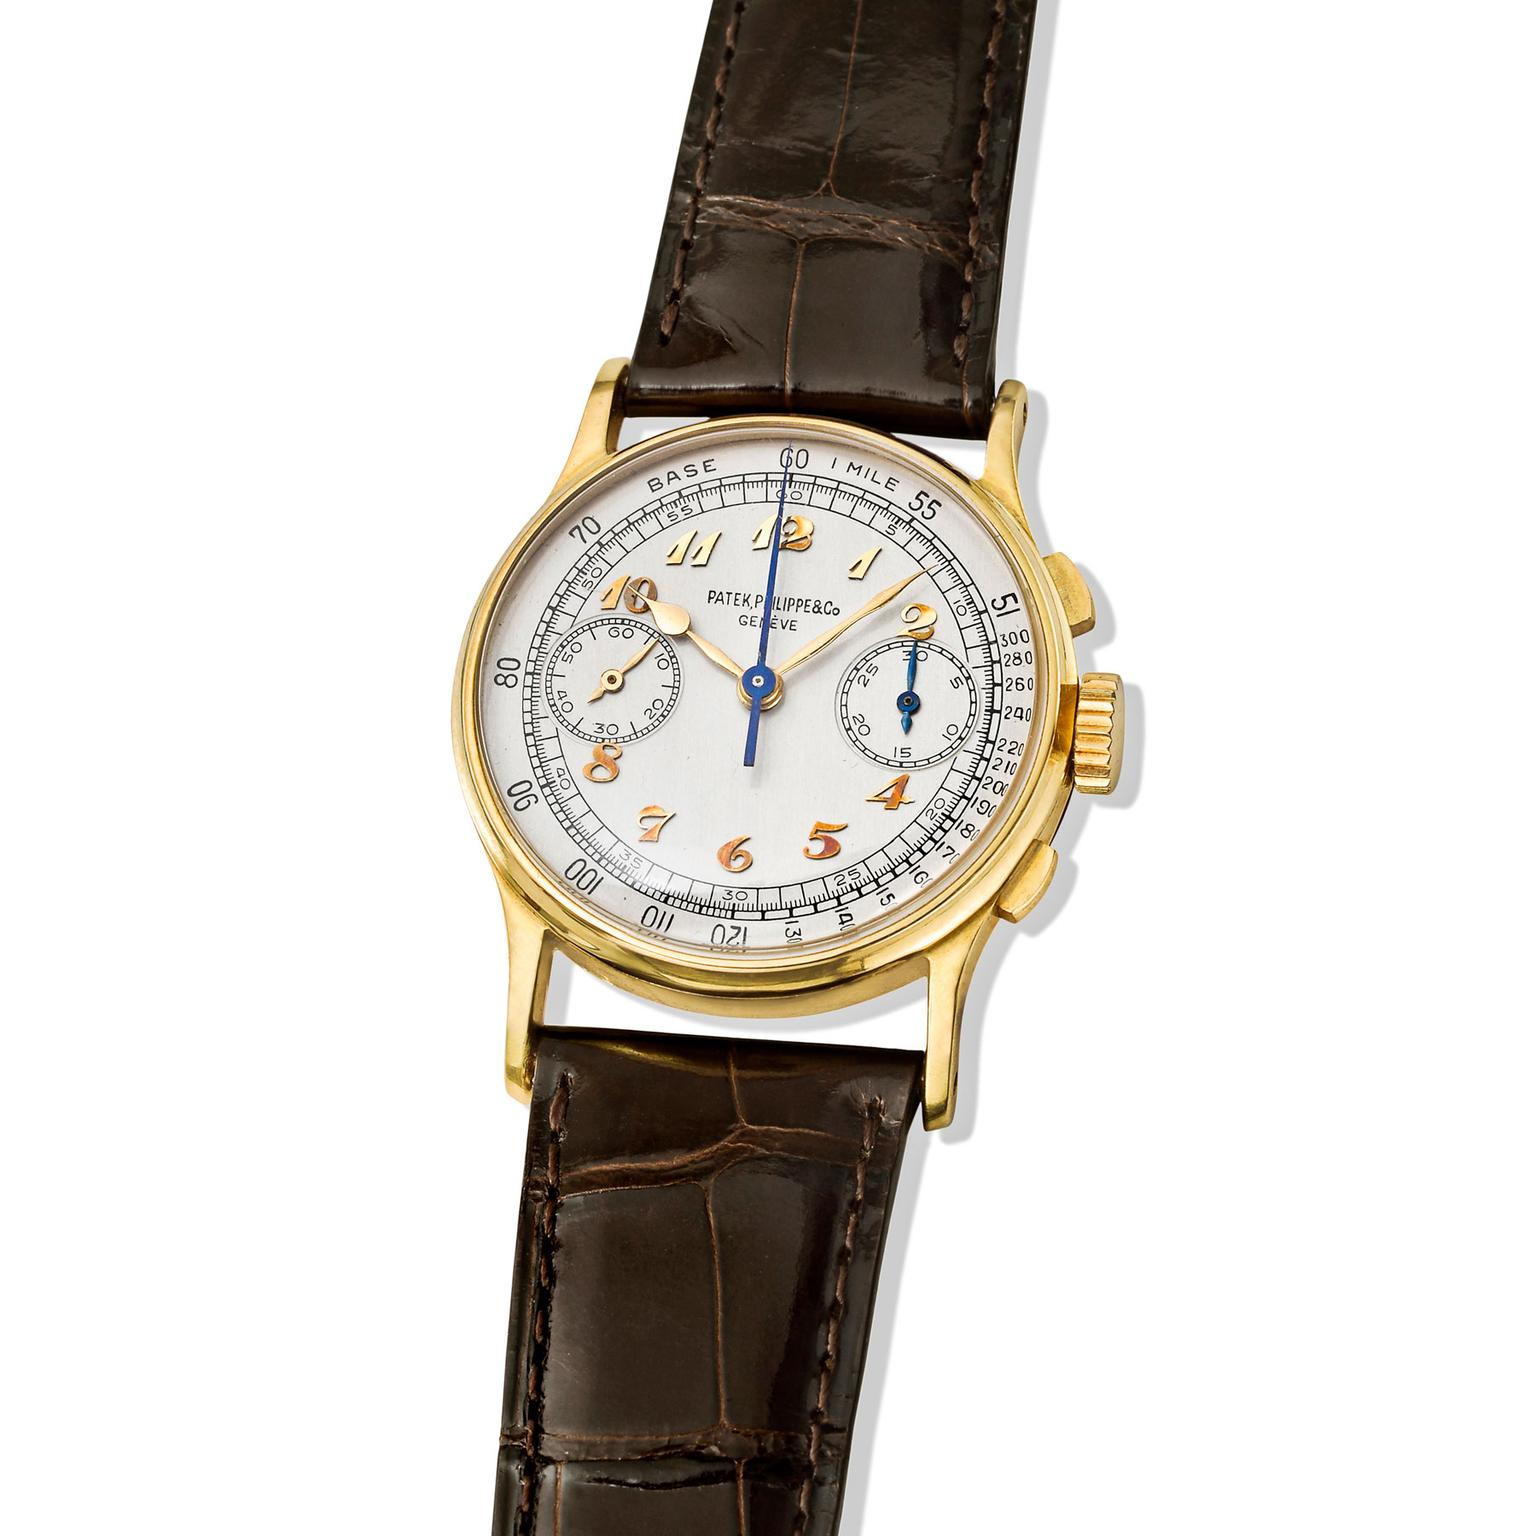 Joe DiMaggio Patek Philippe Ref. 130 chronograph of 1948